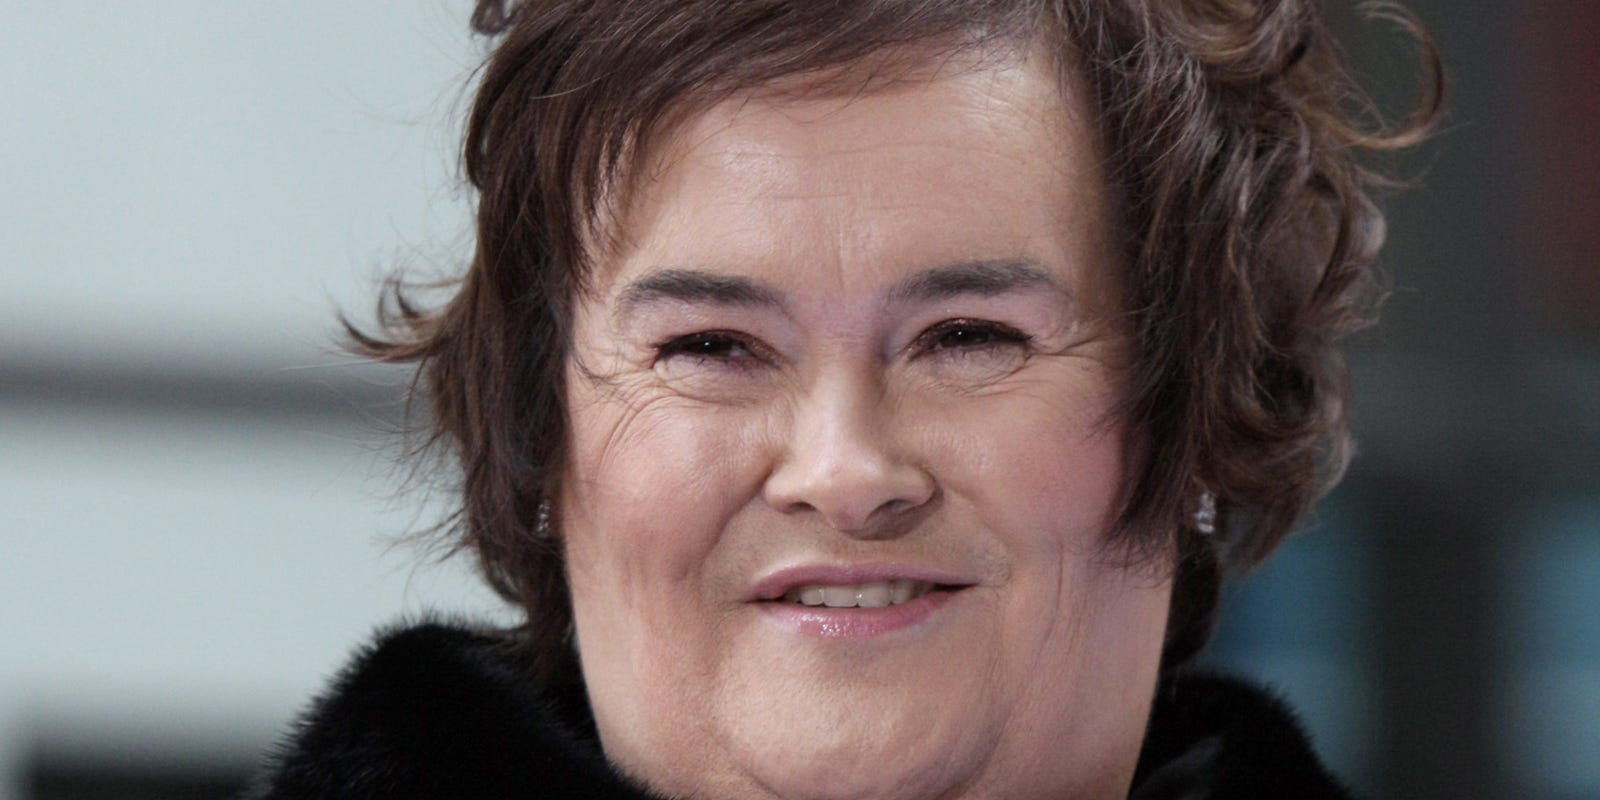 Died susan boyle What Happened